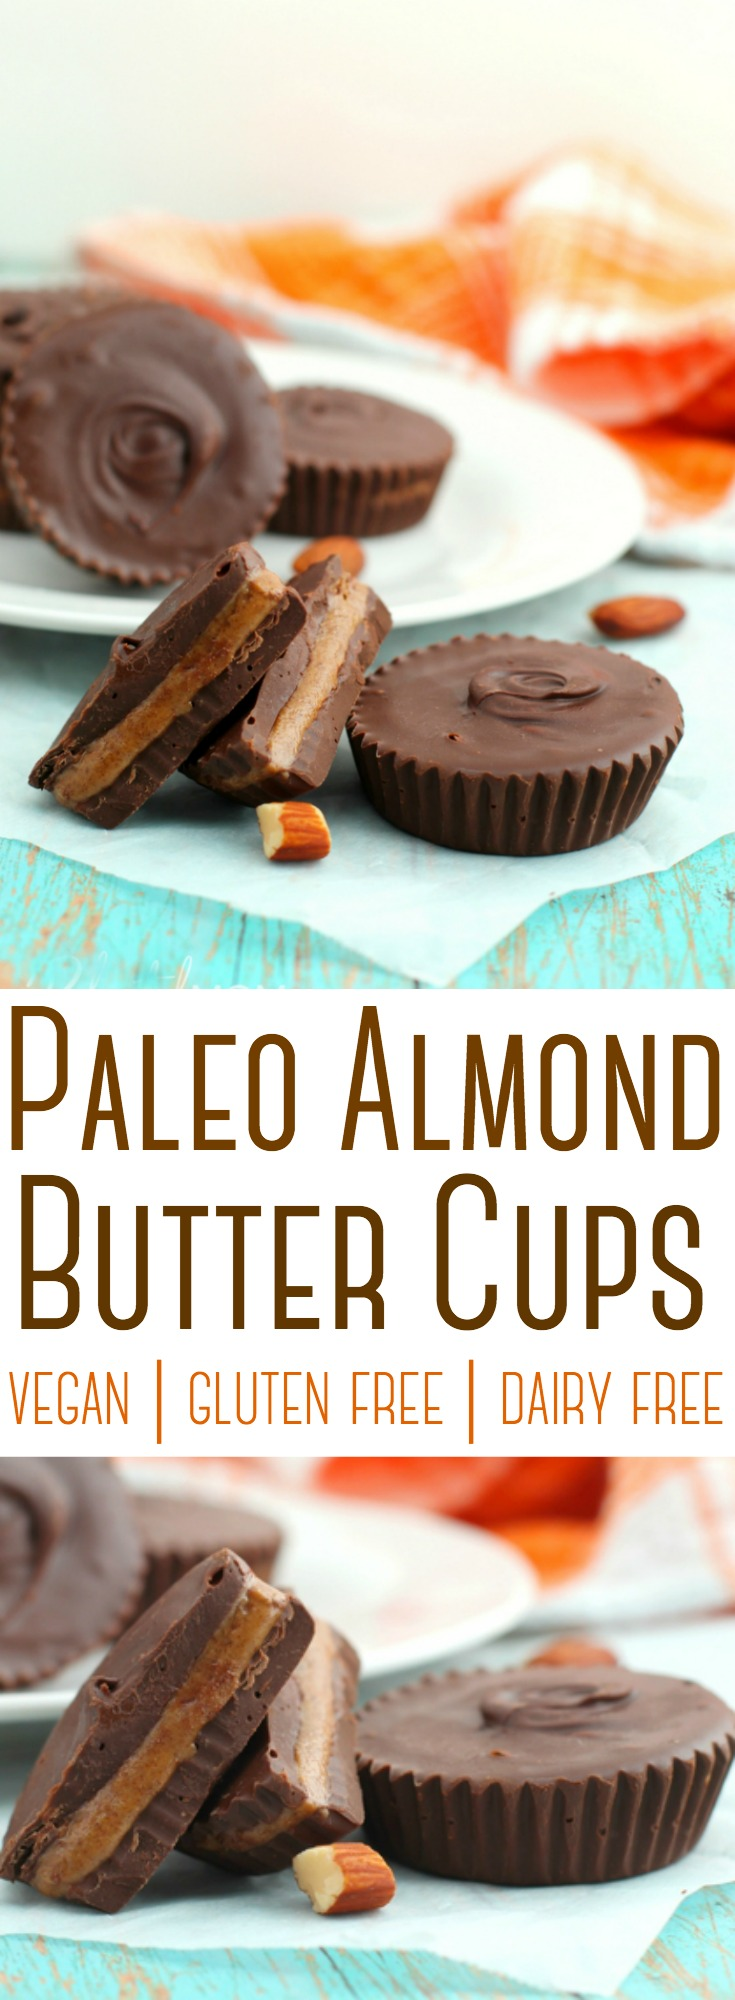 A 5-ingredient recipe for rich, decadent chocolate cups stuffed with almond butter. Paleo, Vegan, Gluten-free, Dairy-free.